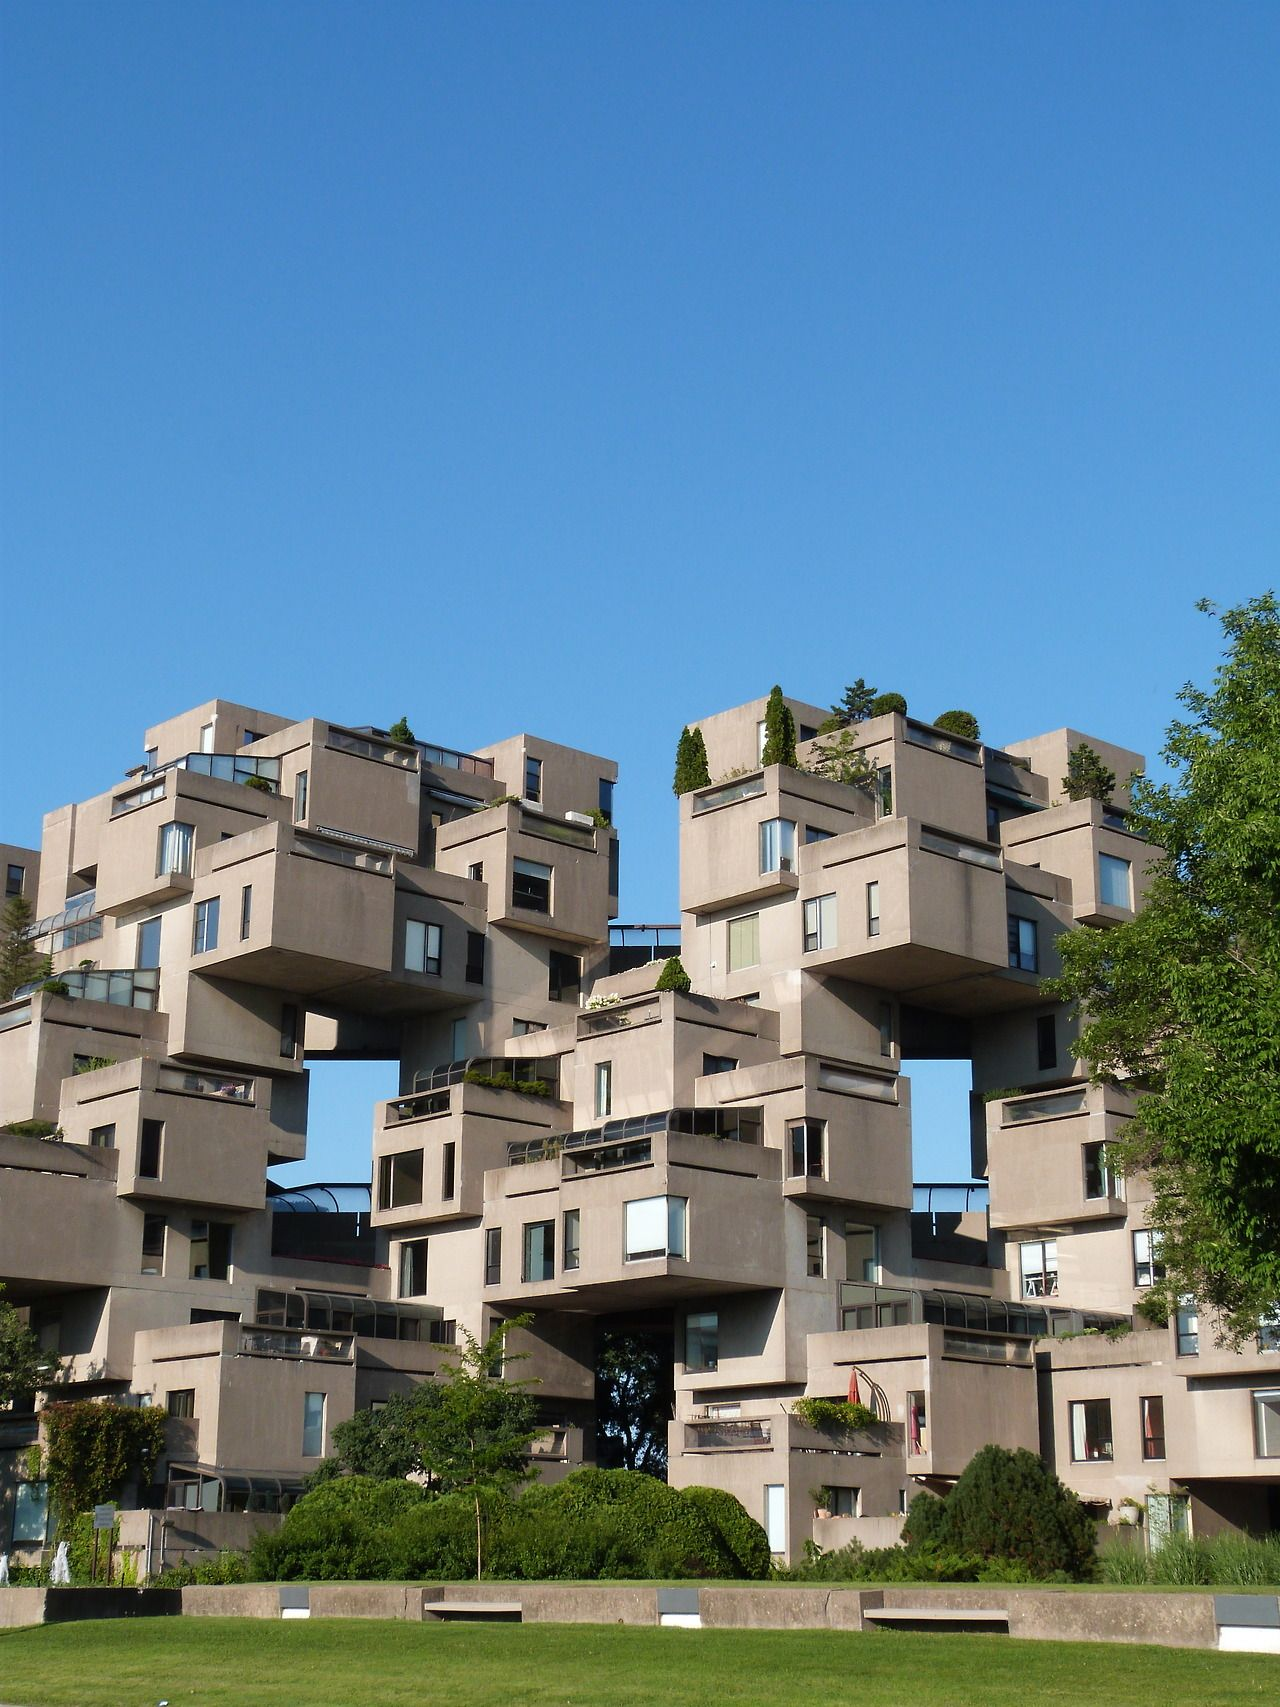 Project: Habitat 67 Location: Montréal, Canada Architect: Moshe ...